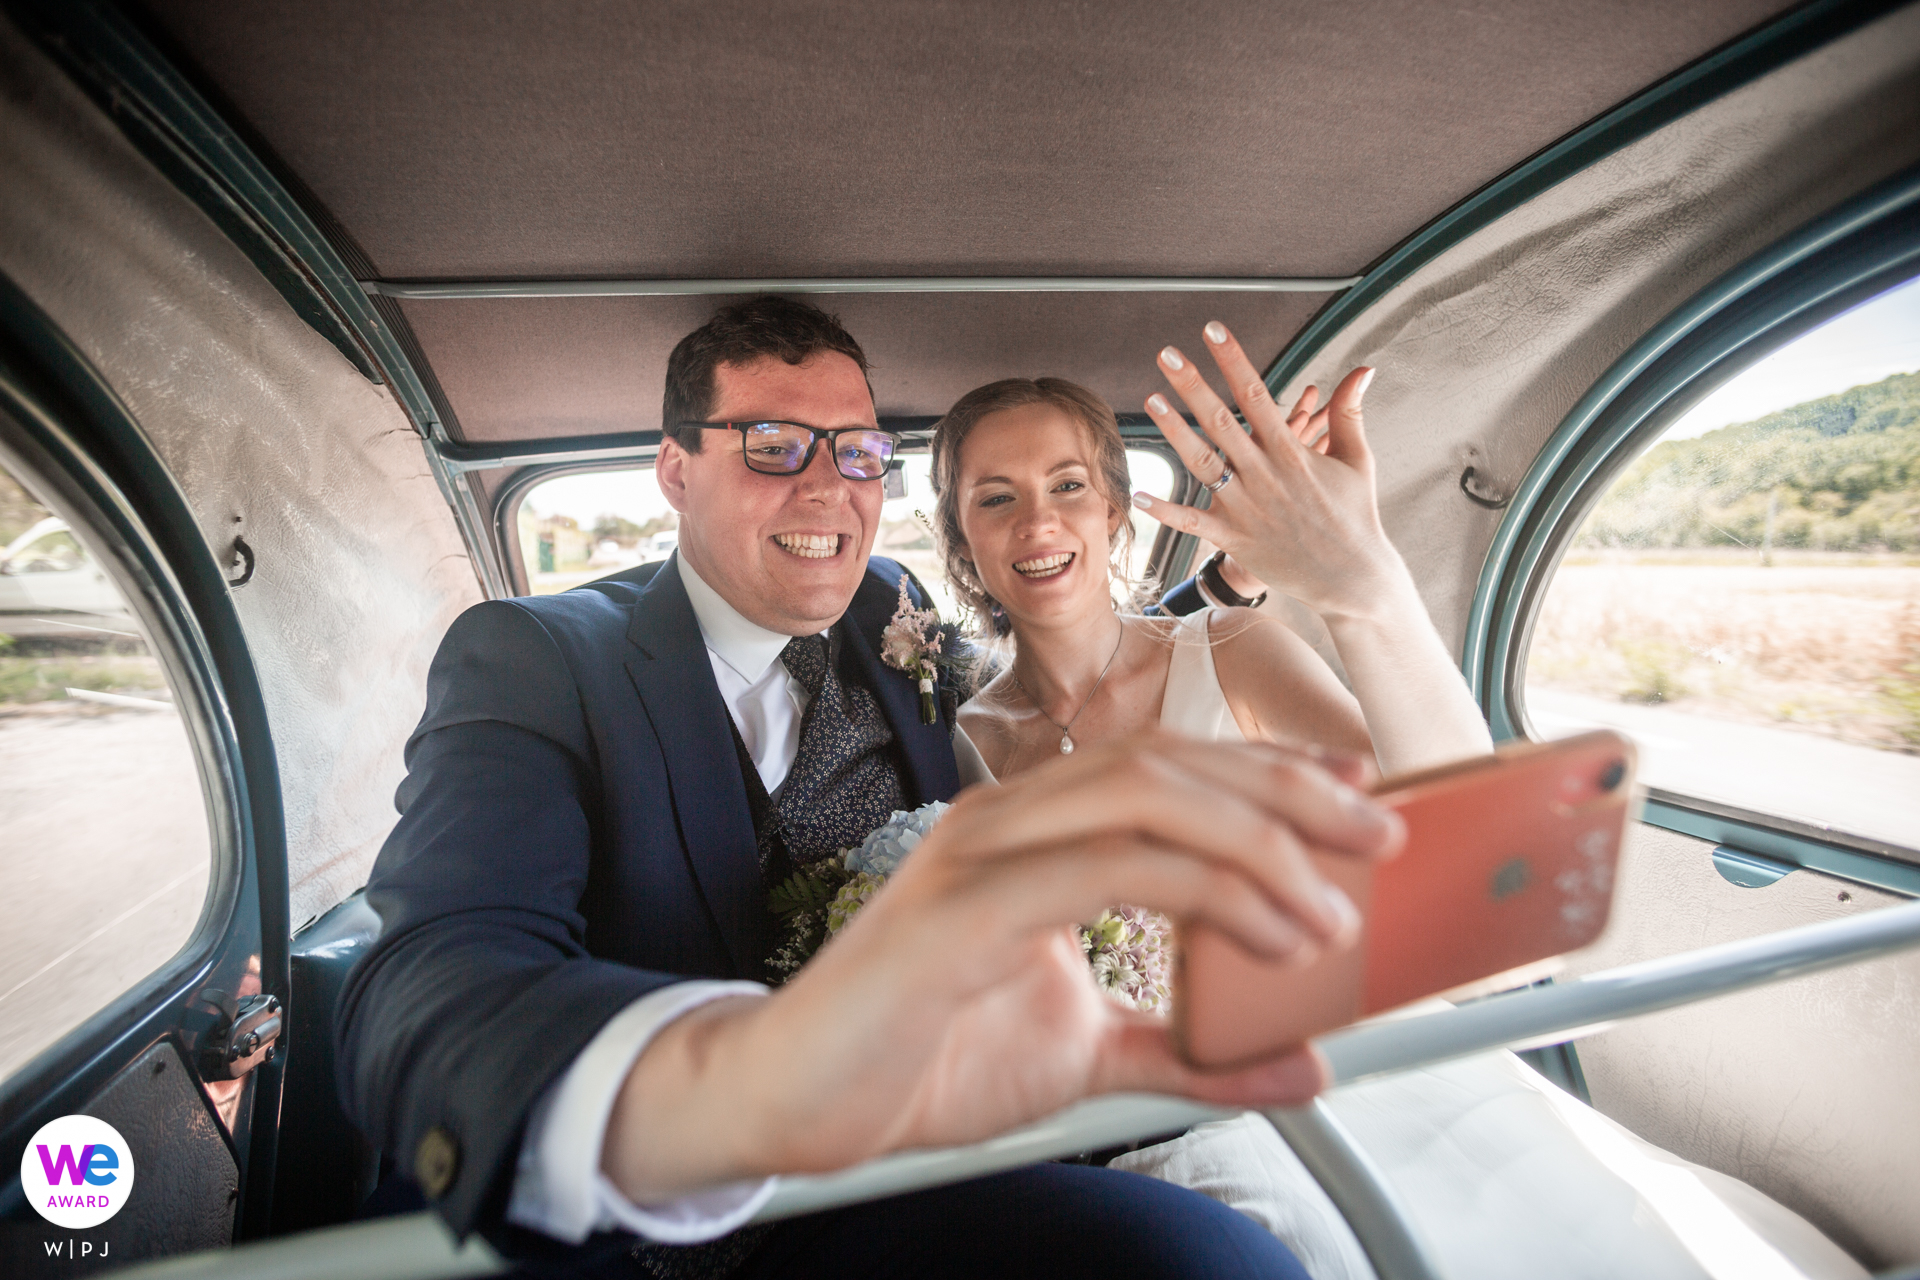 Albi France Elopement Photographer | Cuddled up in the car together after their ceremony, the couple video chats with family